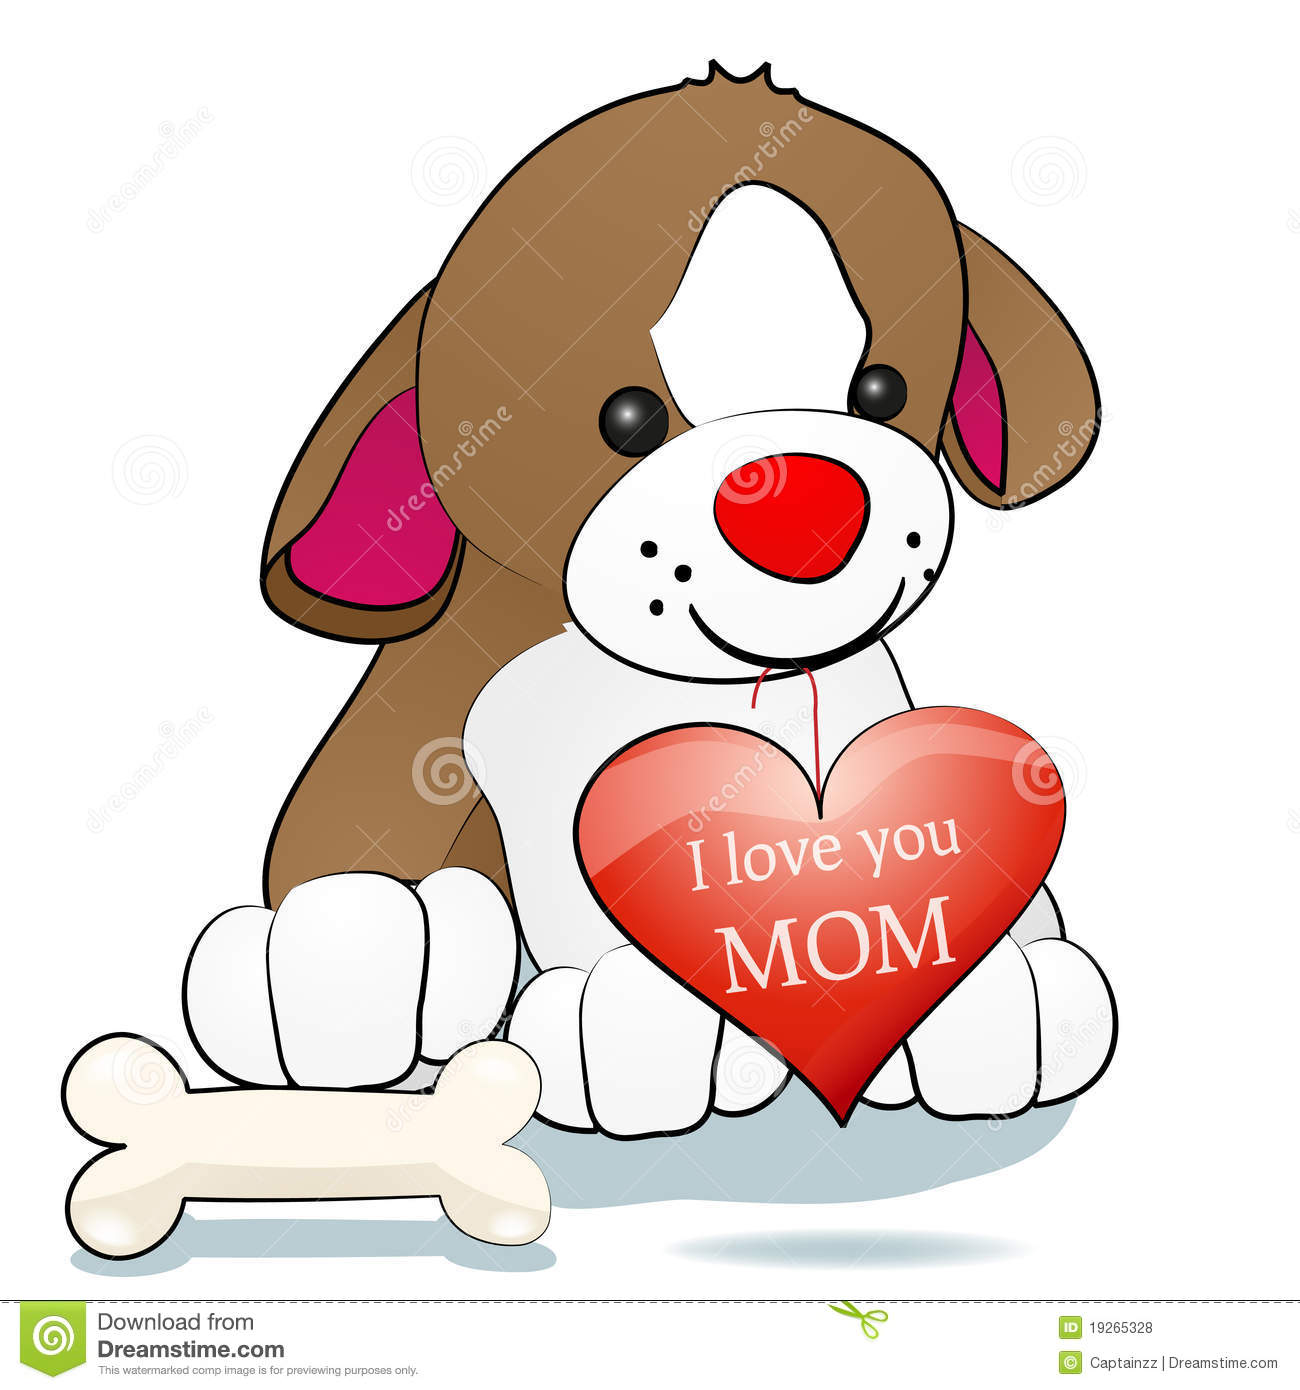 Royalty free stock photos dog and i love you mom image 19265328